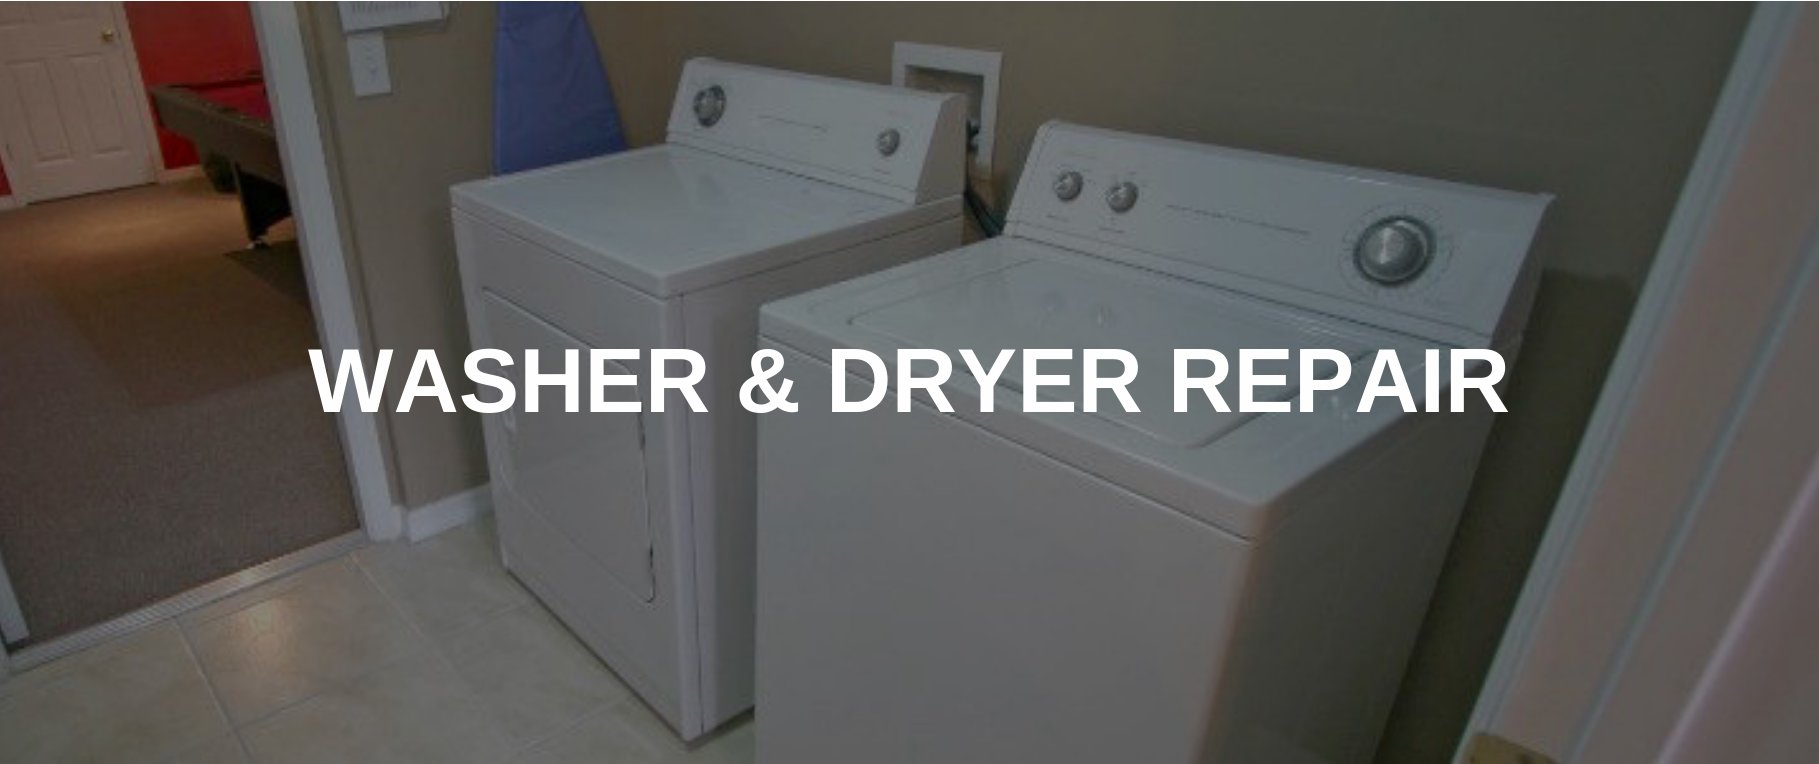 washing machine repair elizabeth nj